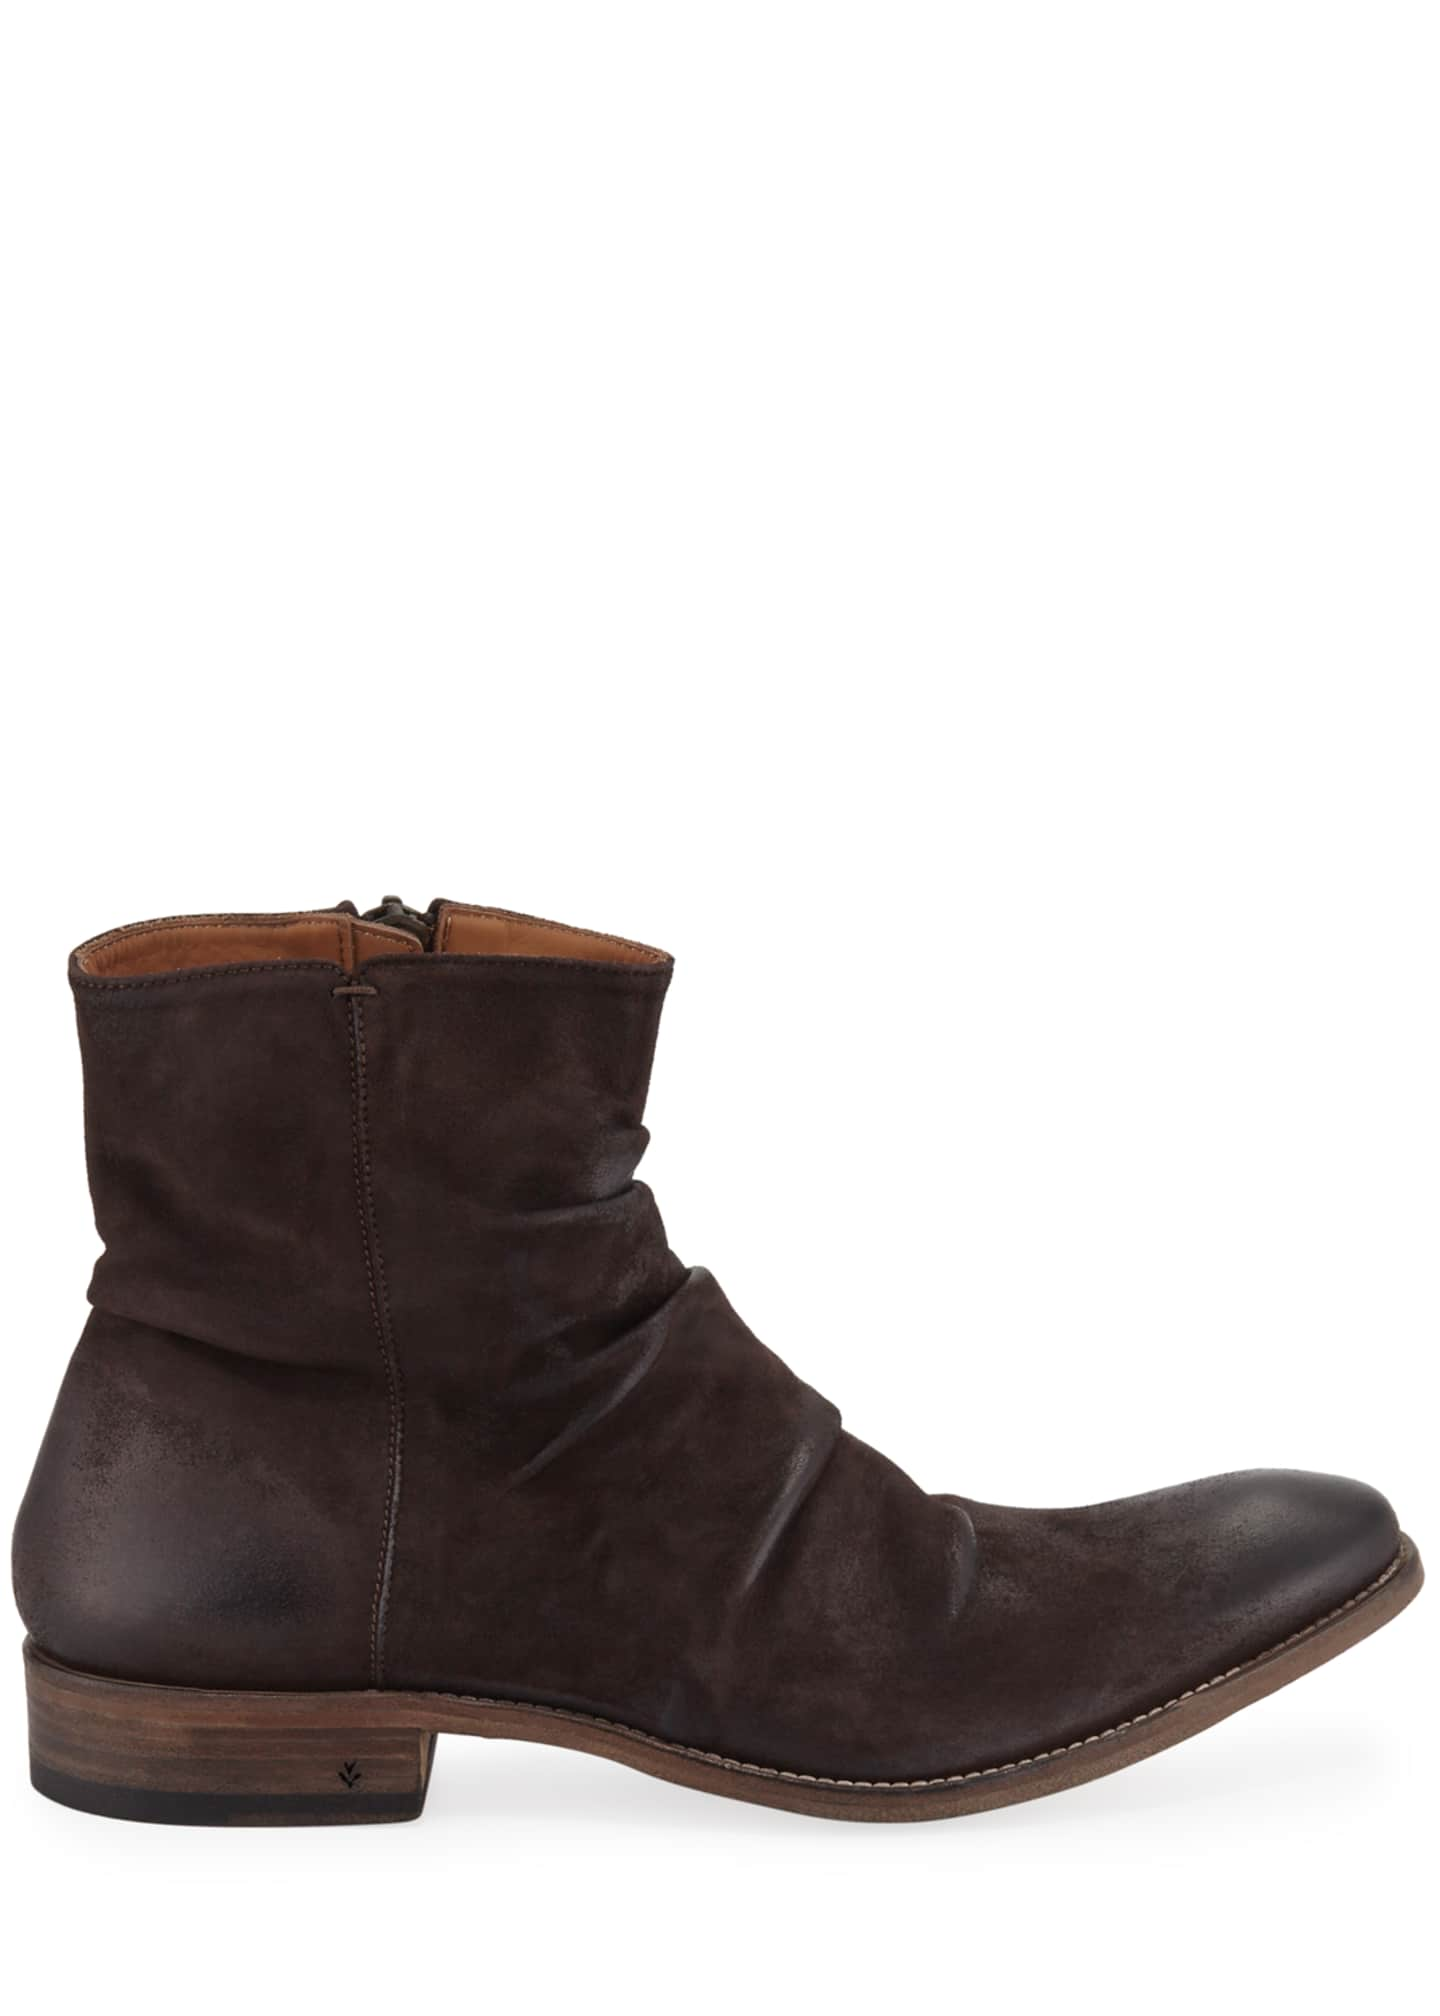 Image 2 of 3: Men's Morrison Sharpei Suede Boots